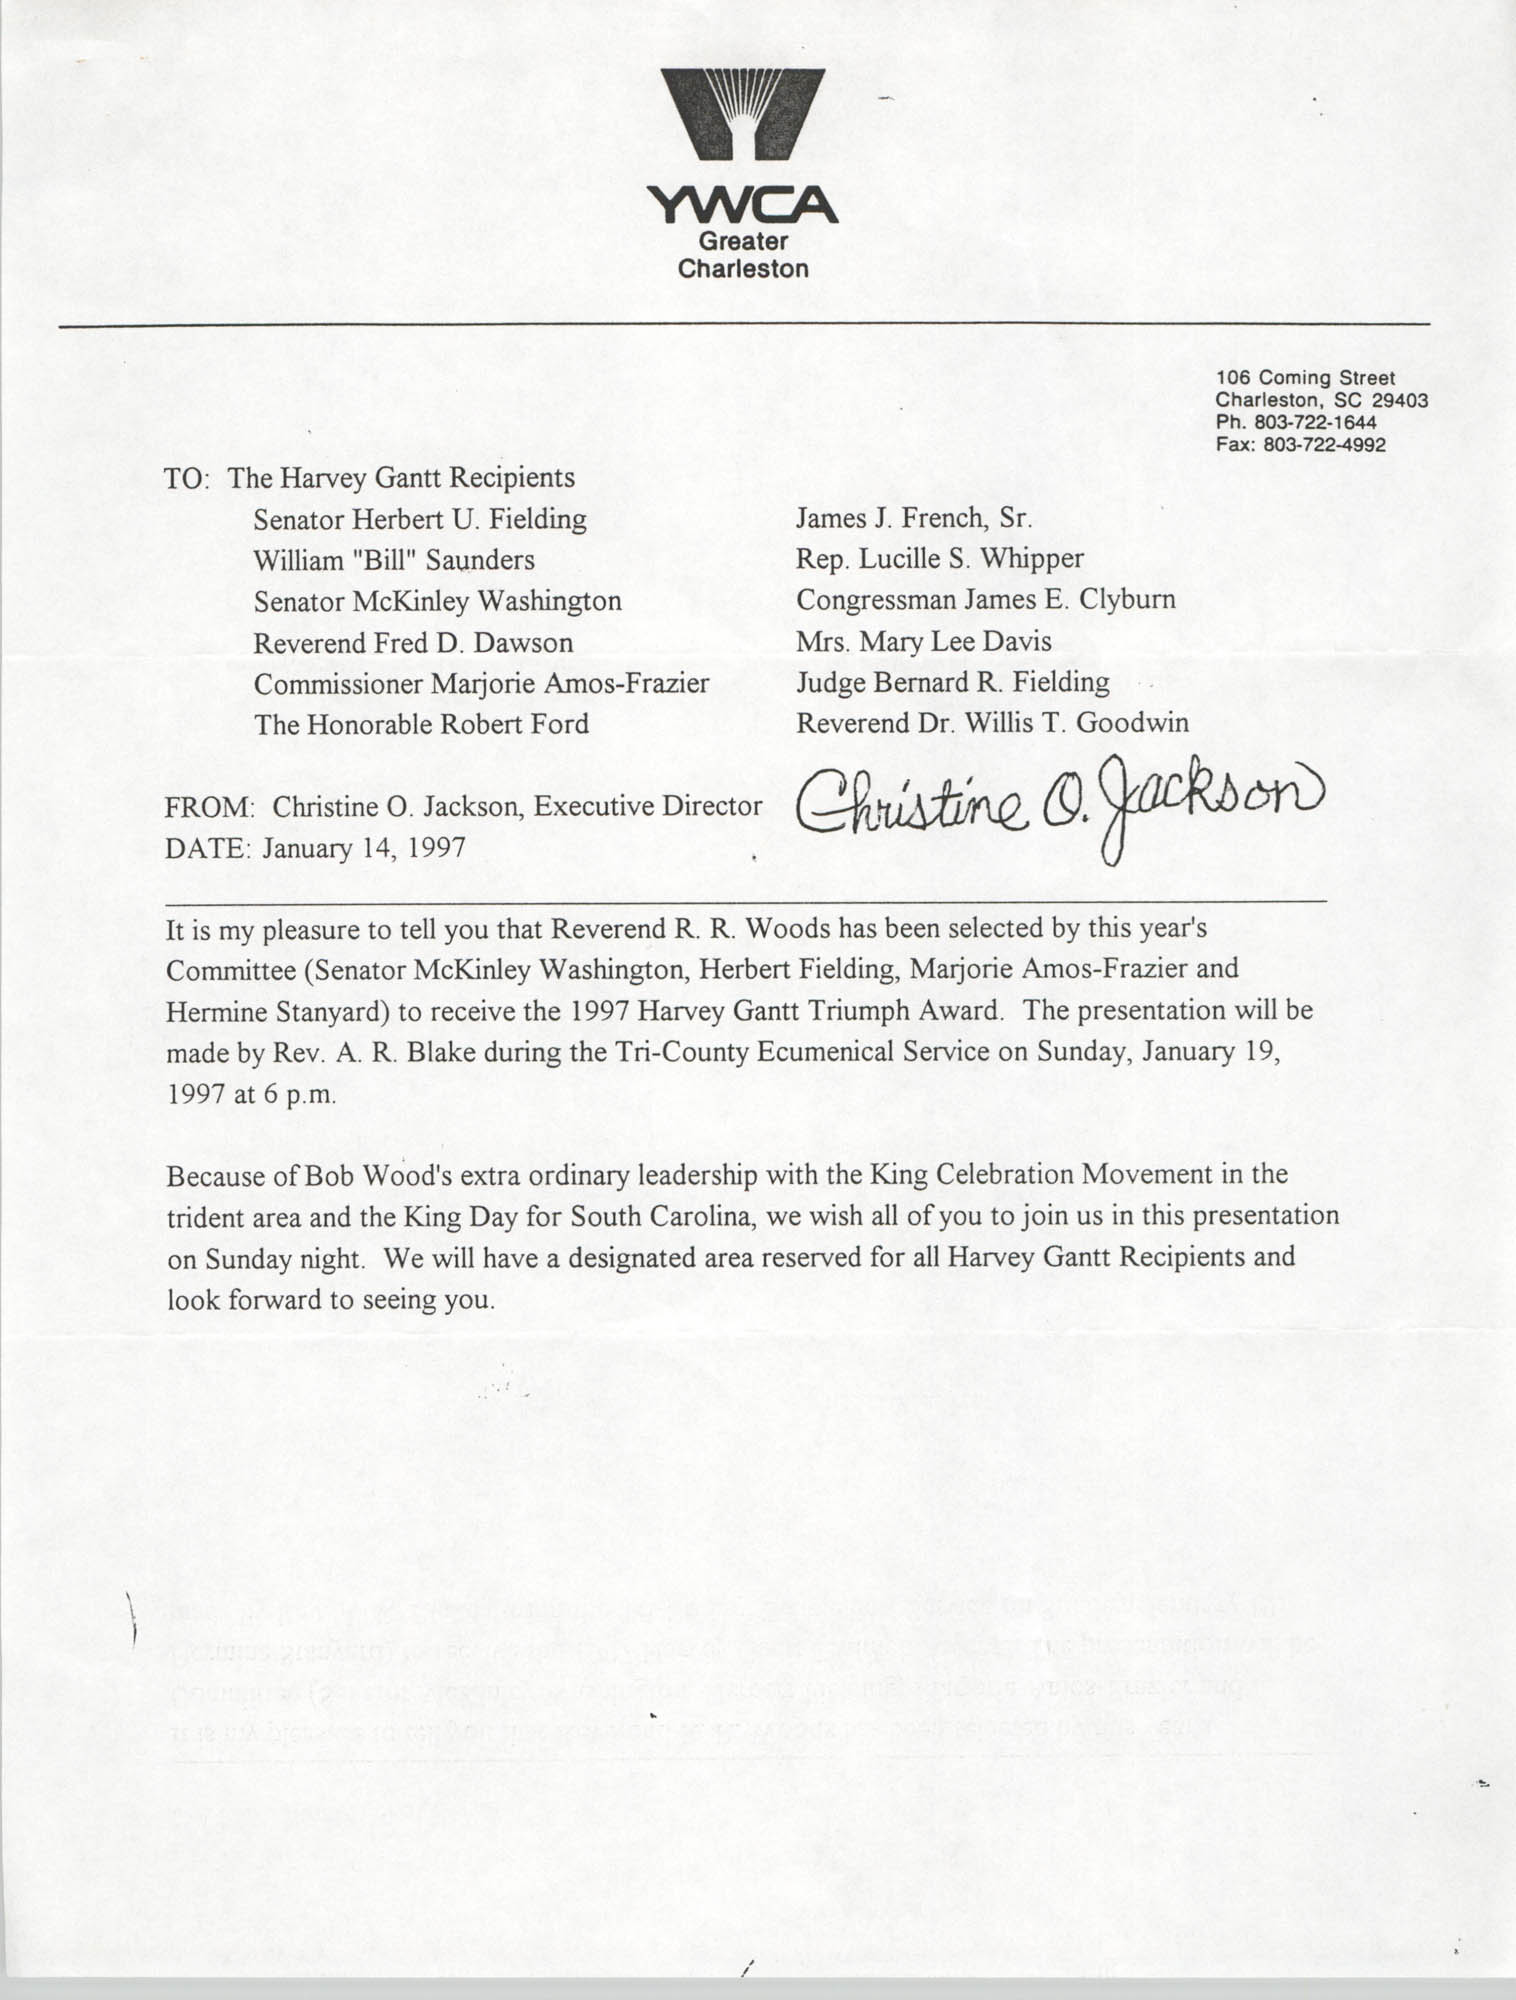 YWCA of Greater Charleston Memorandum, January 14, 1997